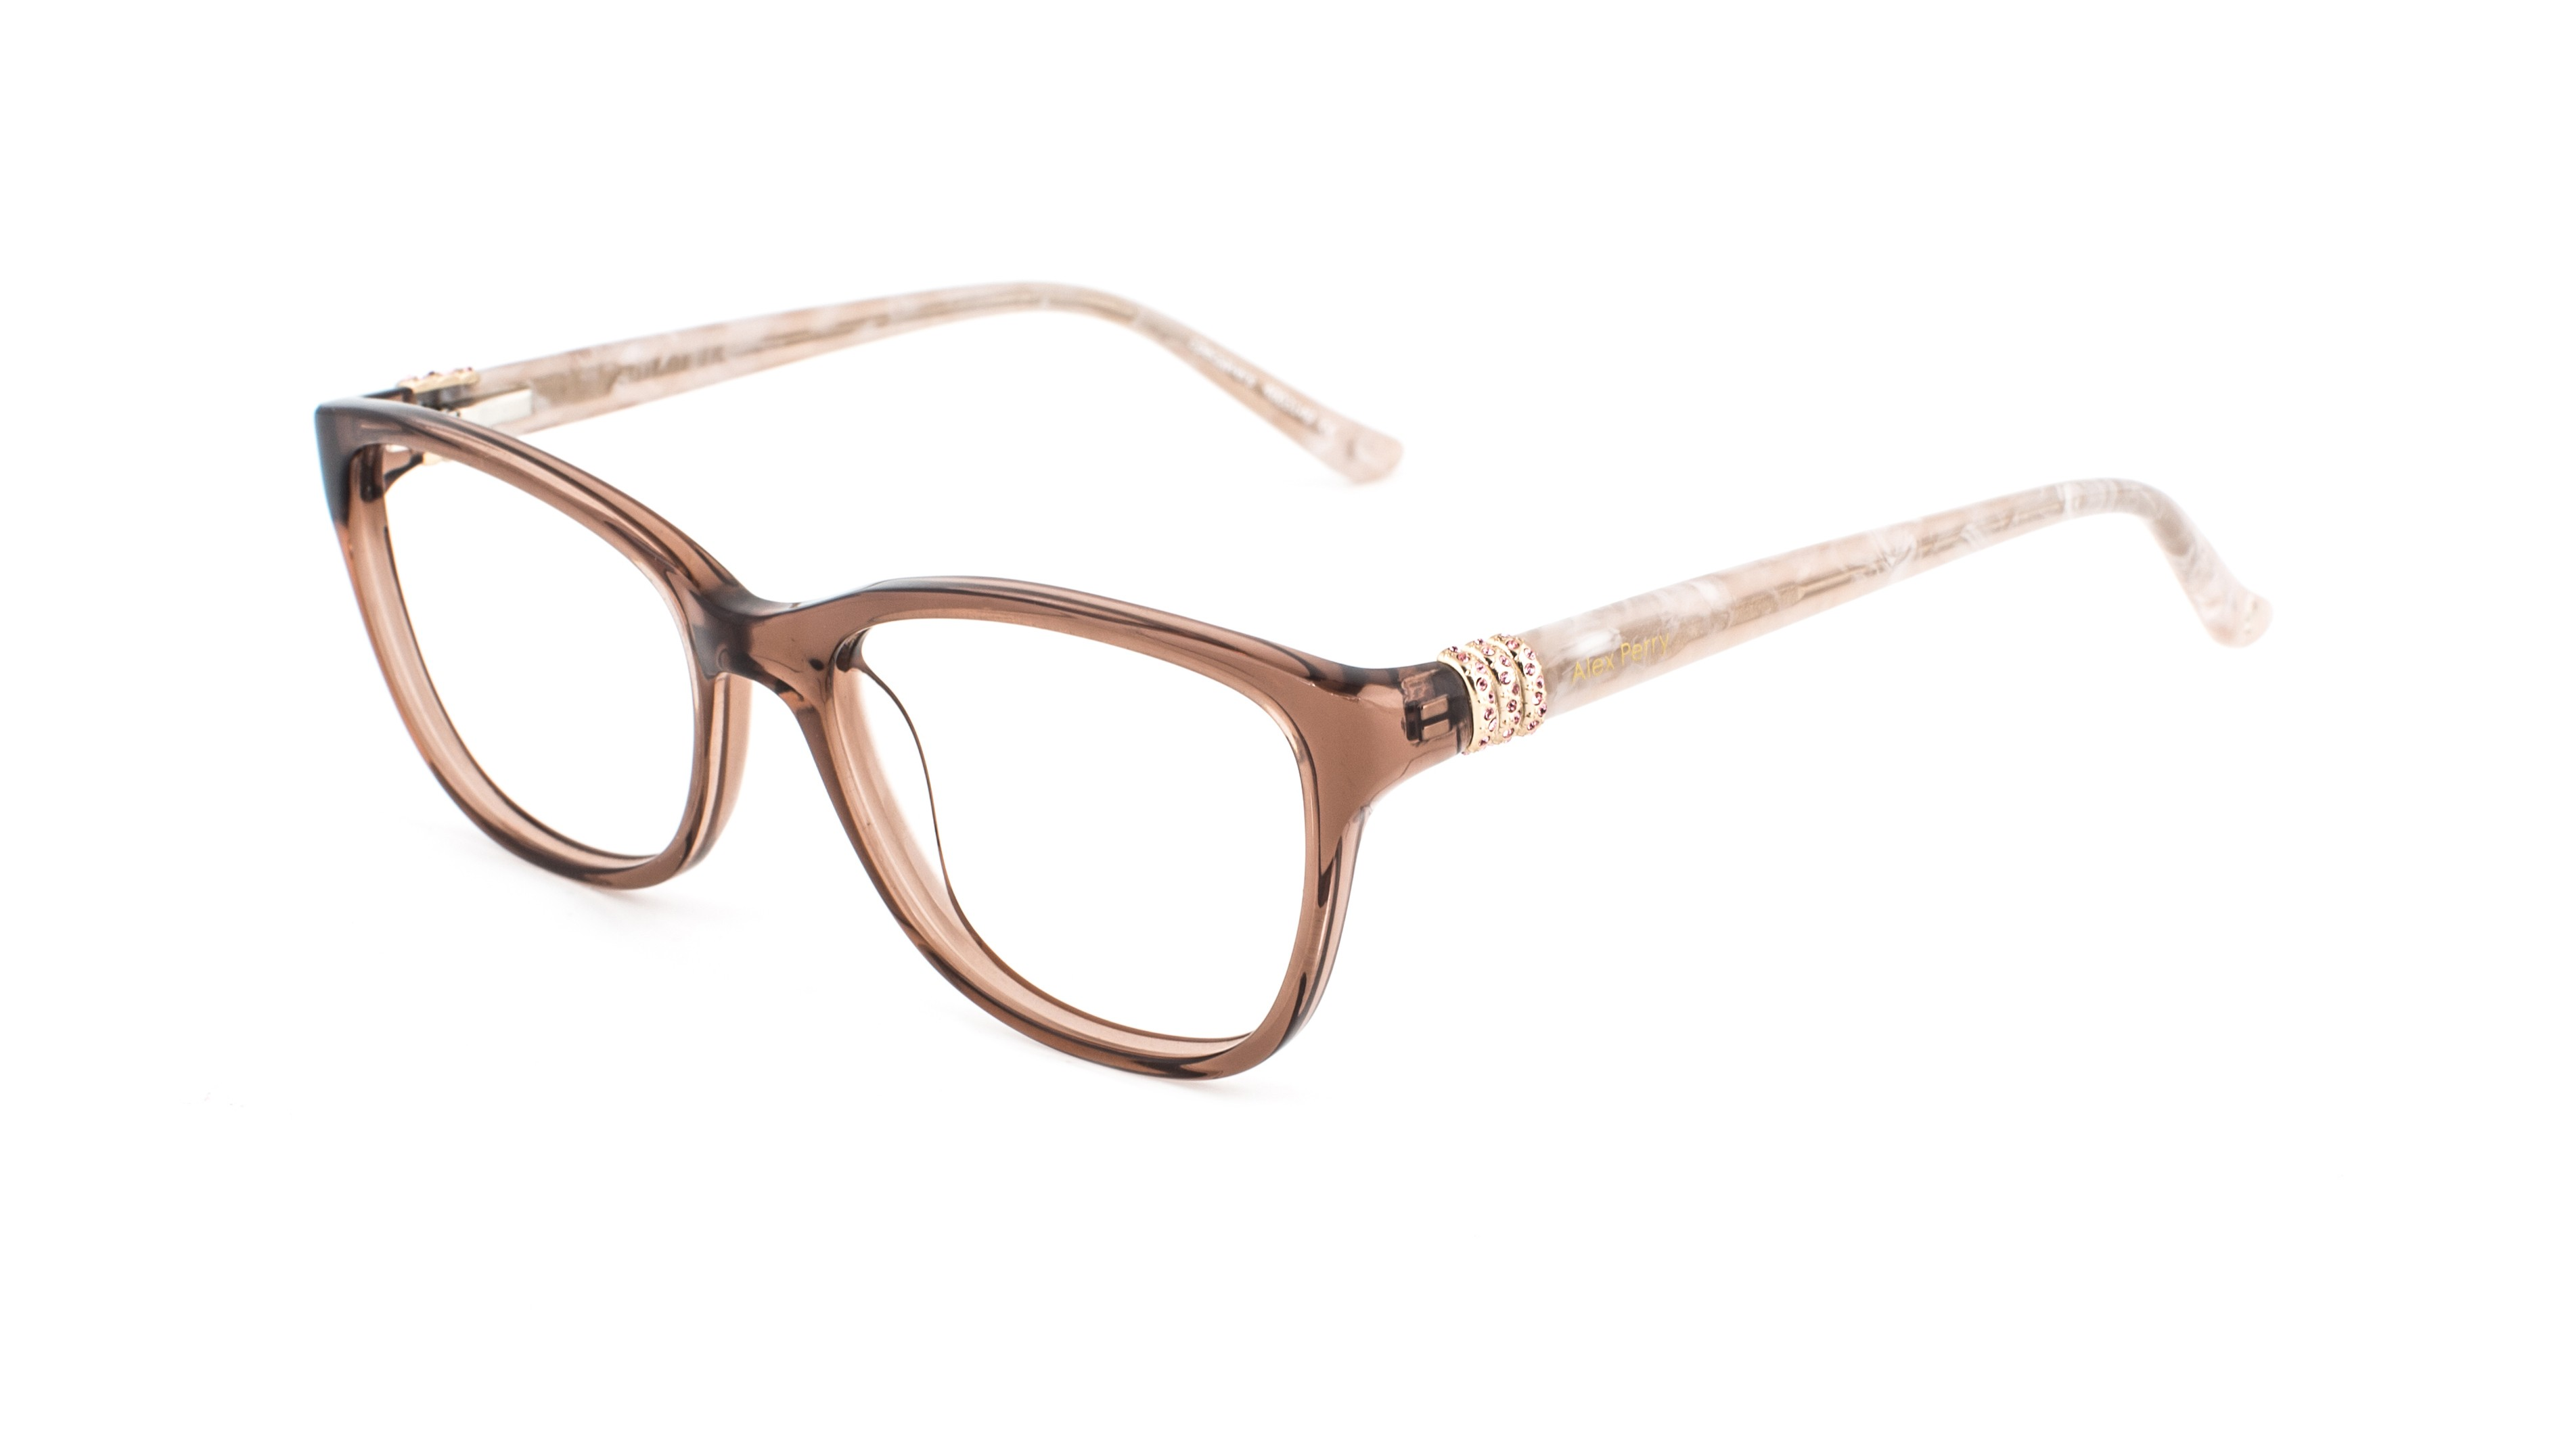 Eyeglass Frame Trends 2015